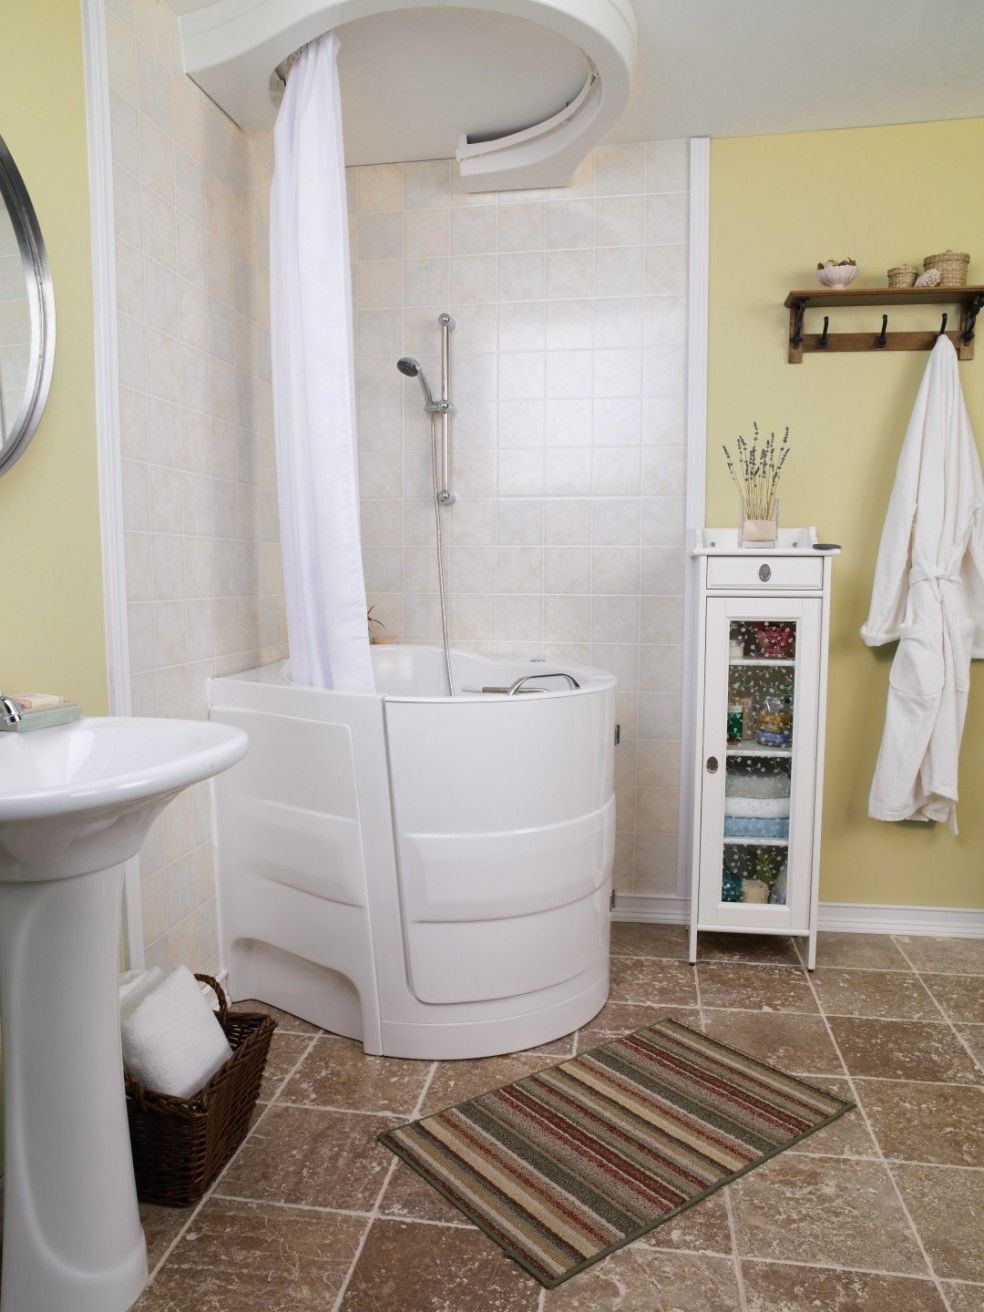 Bathrooms Sitdown Bathtub Design With White Fiberglass